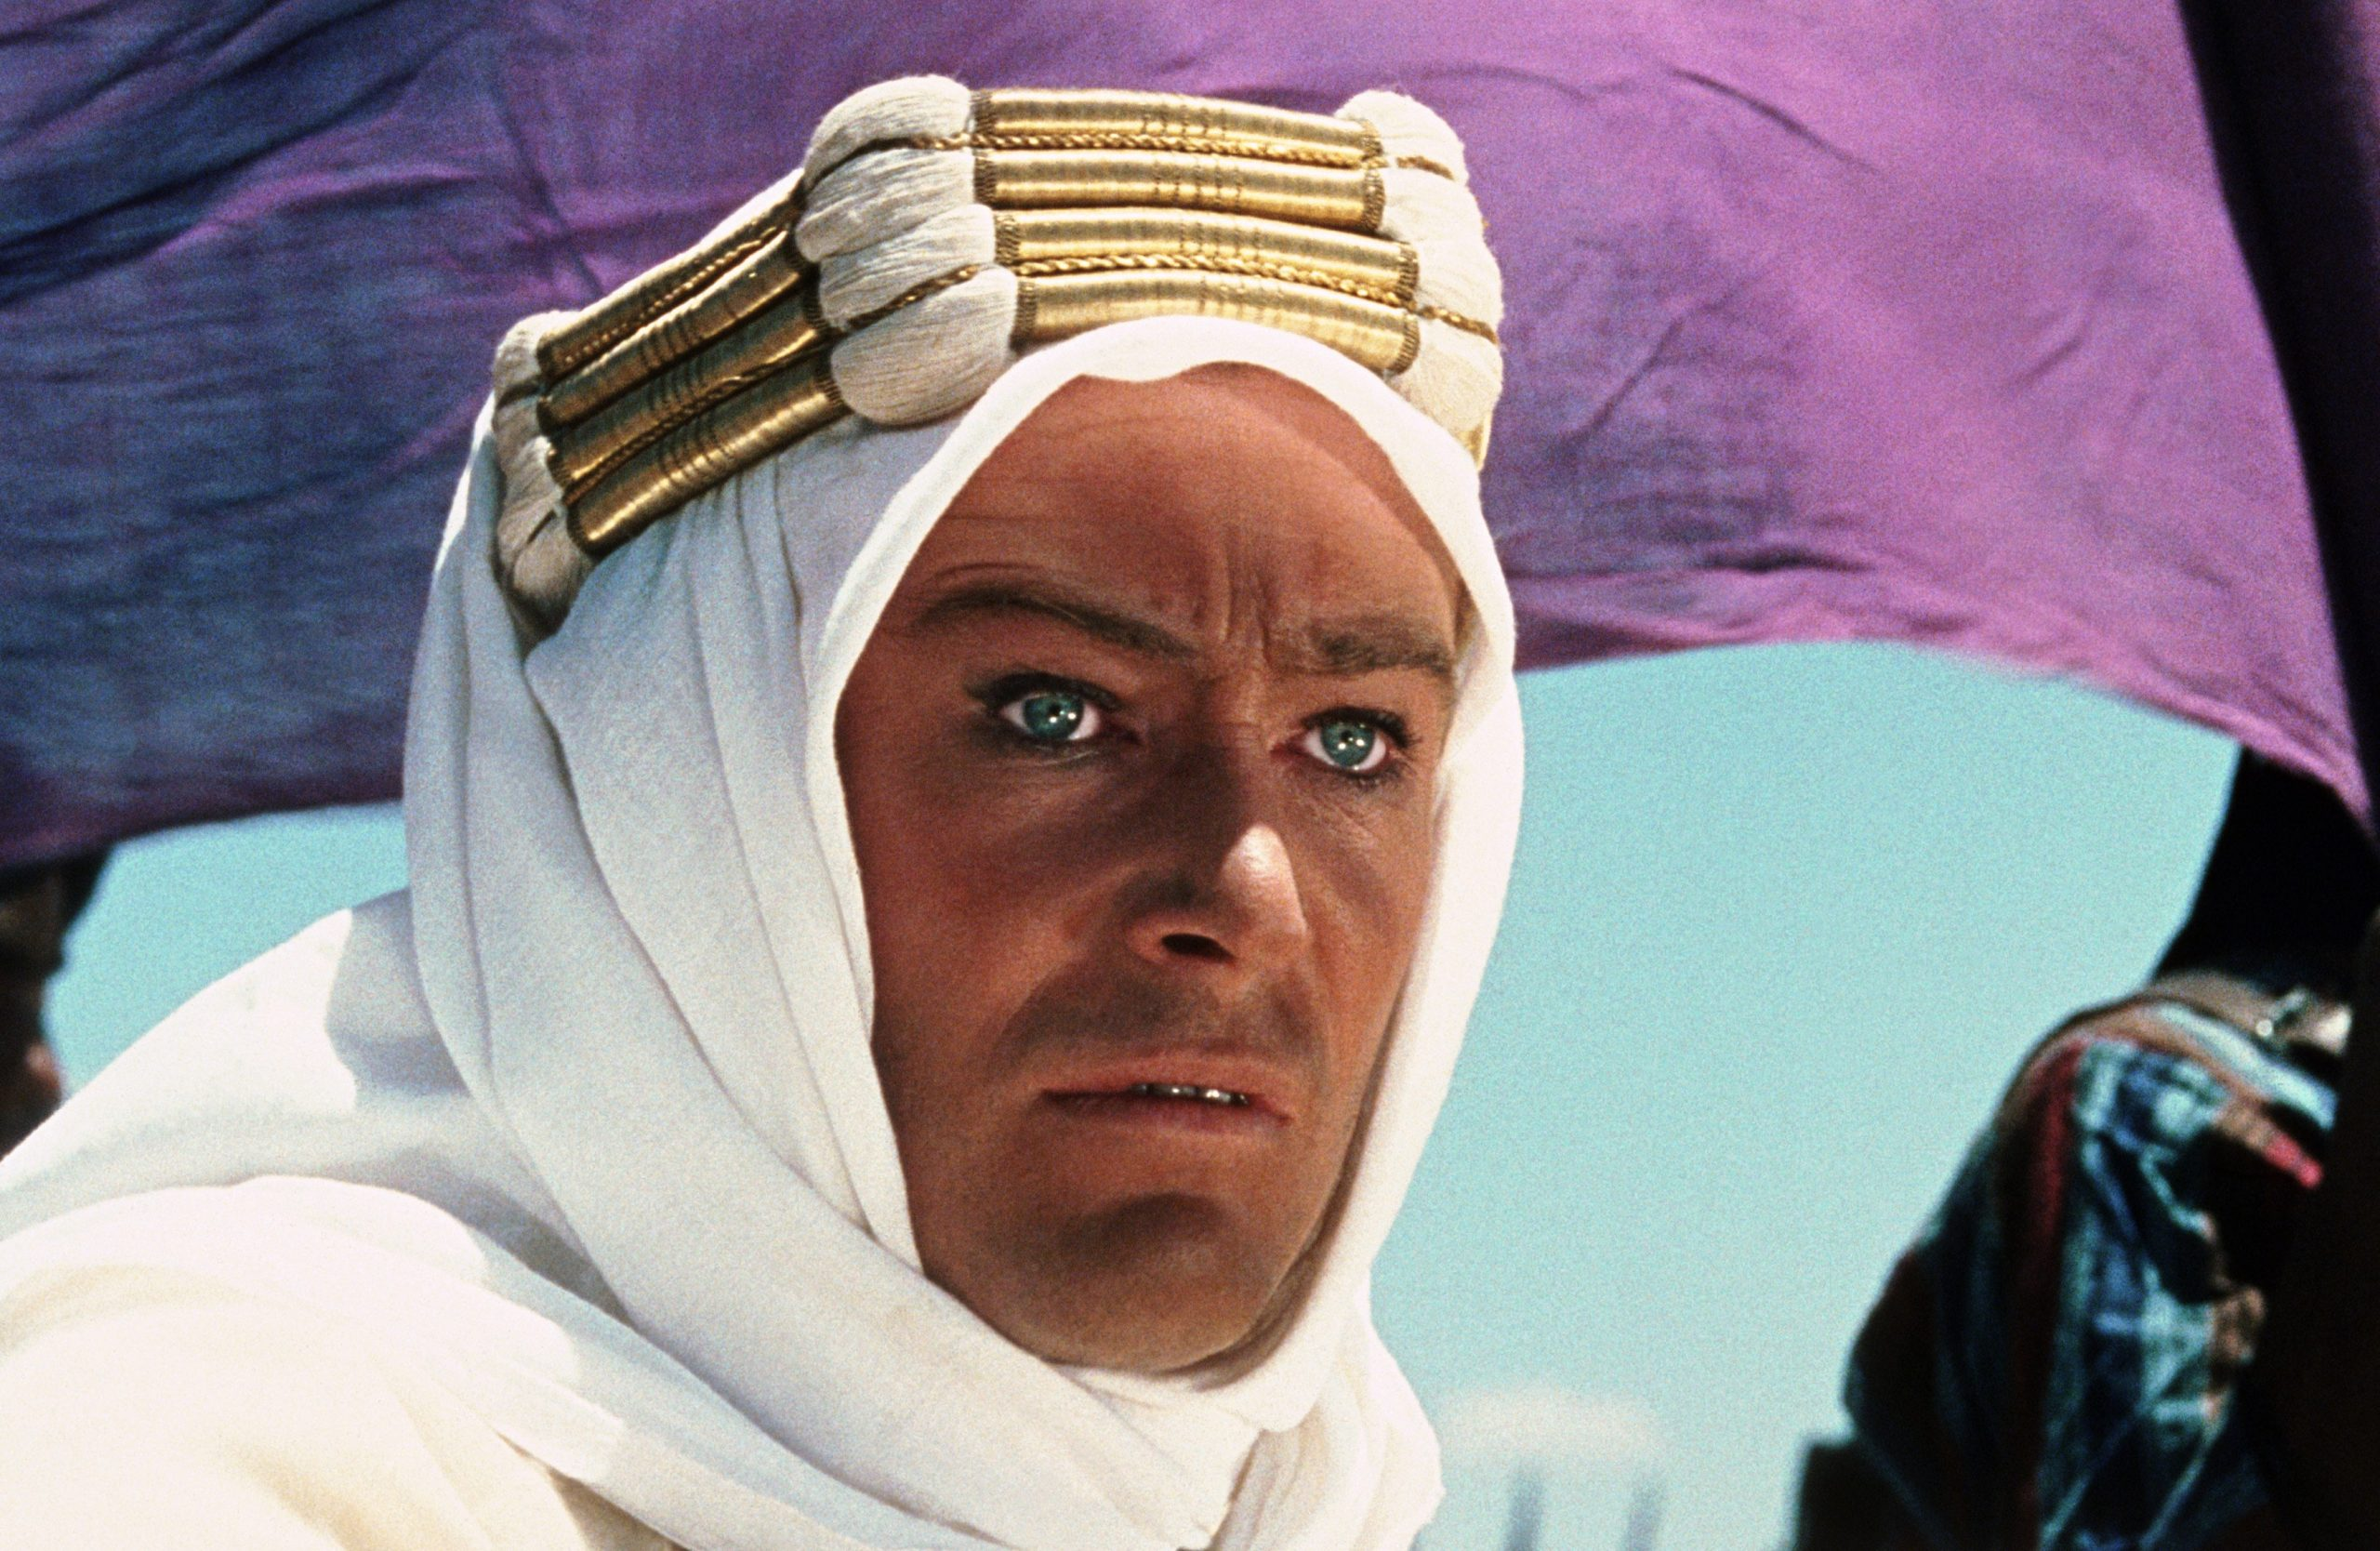 lawrenceofarabia1962.4455 scaled Films 'Based On A True Story' That Completely Lied To Us